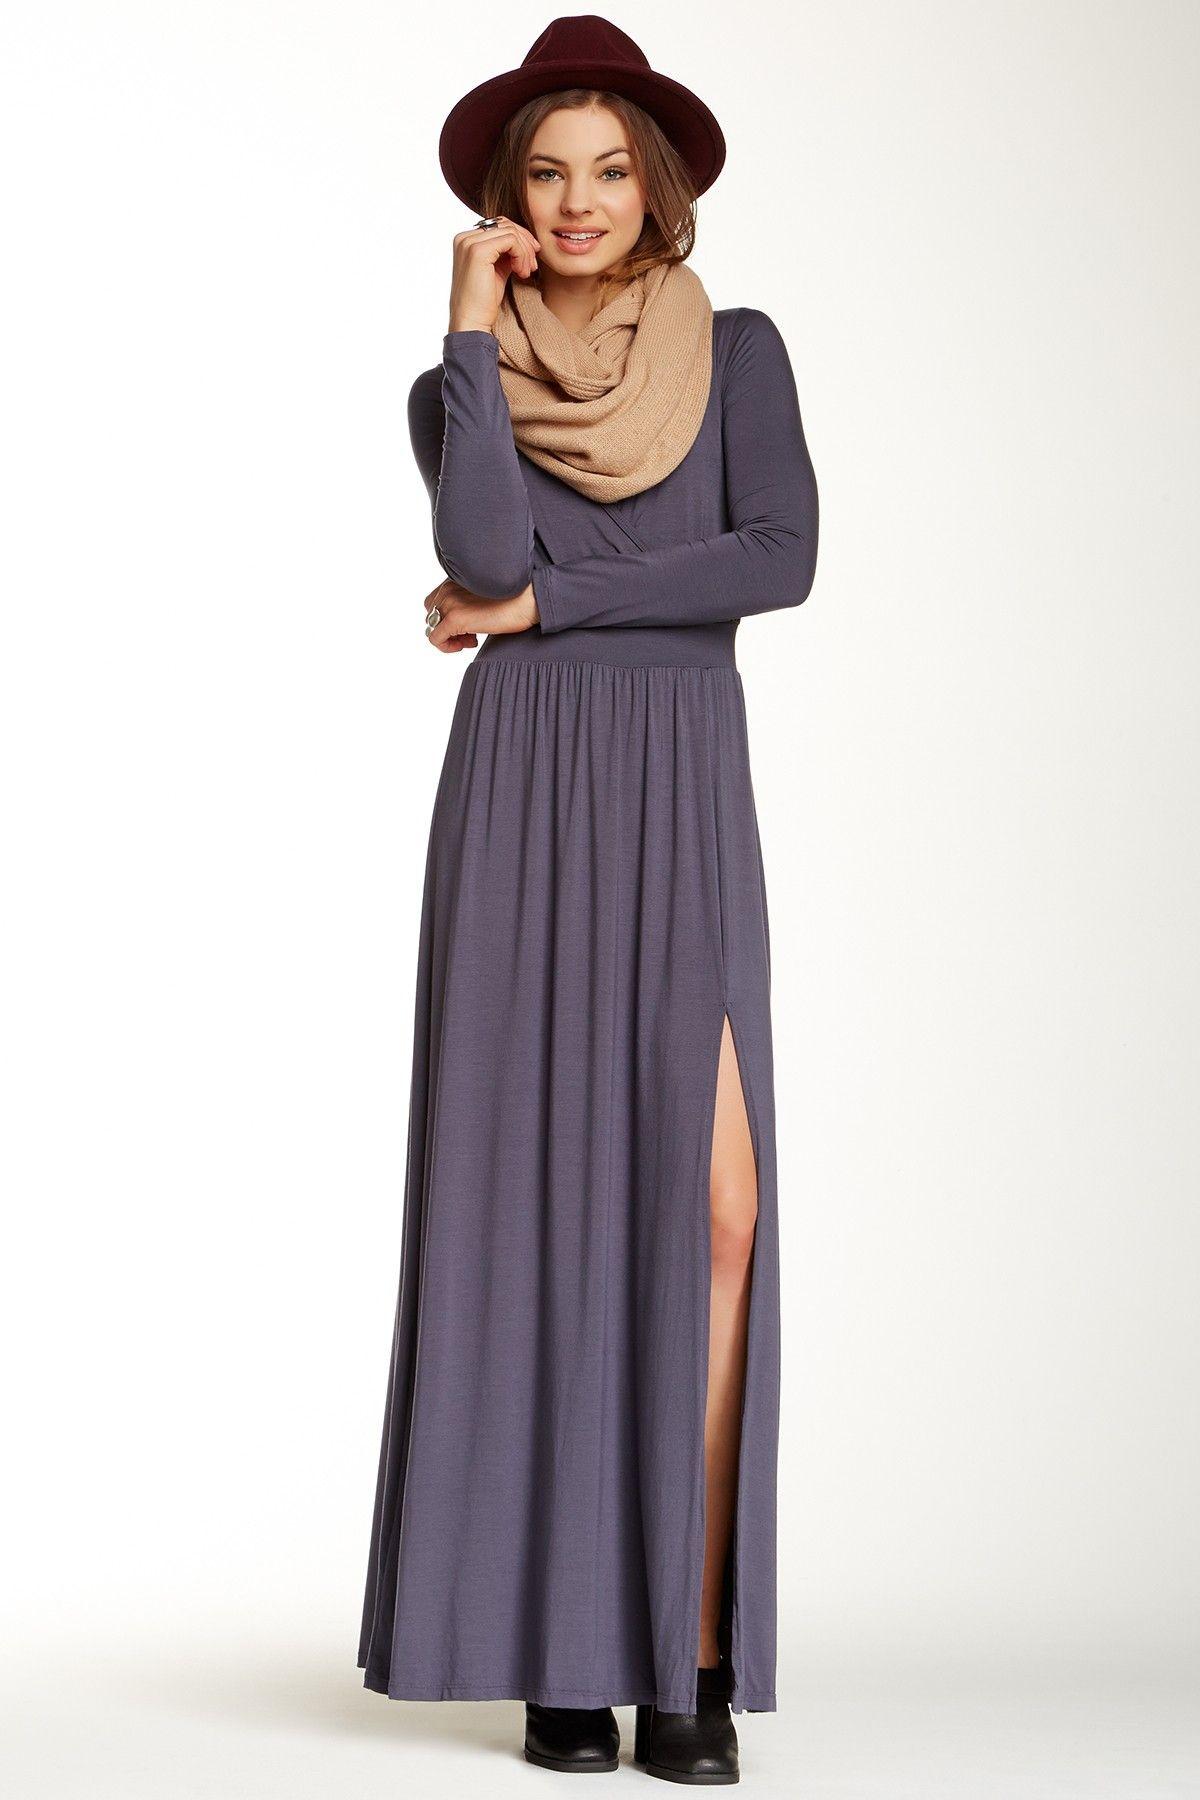 Go Couture | Surplice Neck Side Slit Maxi Dress | My Style | Pinterest